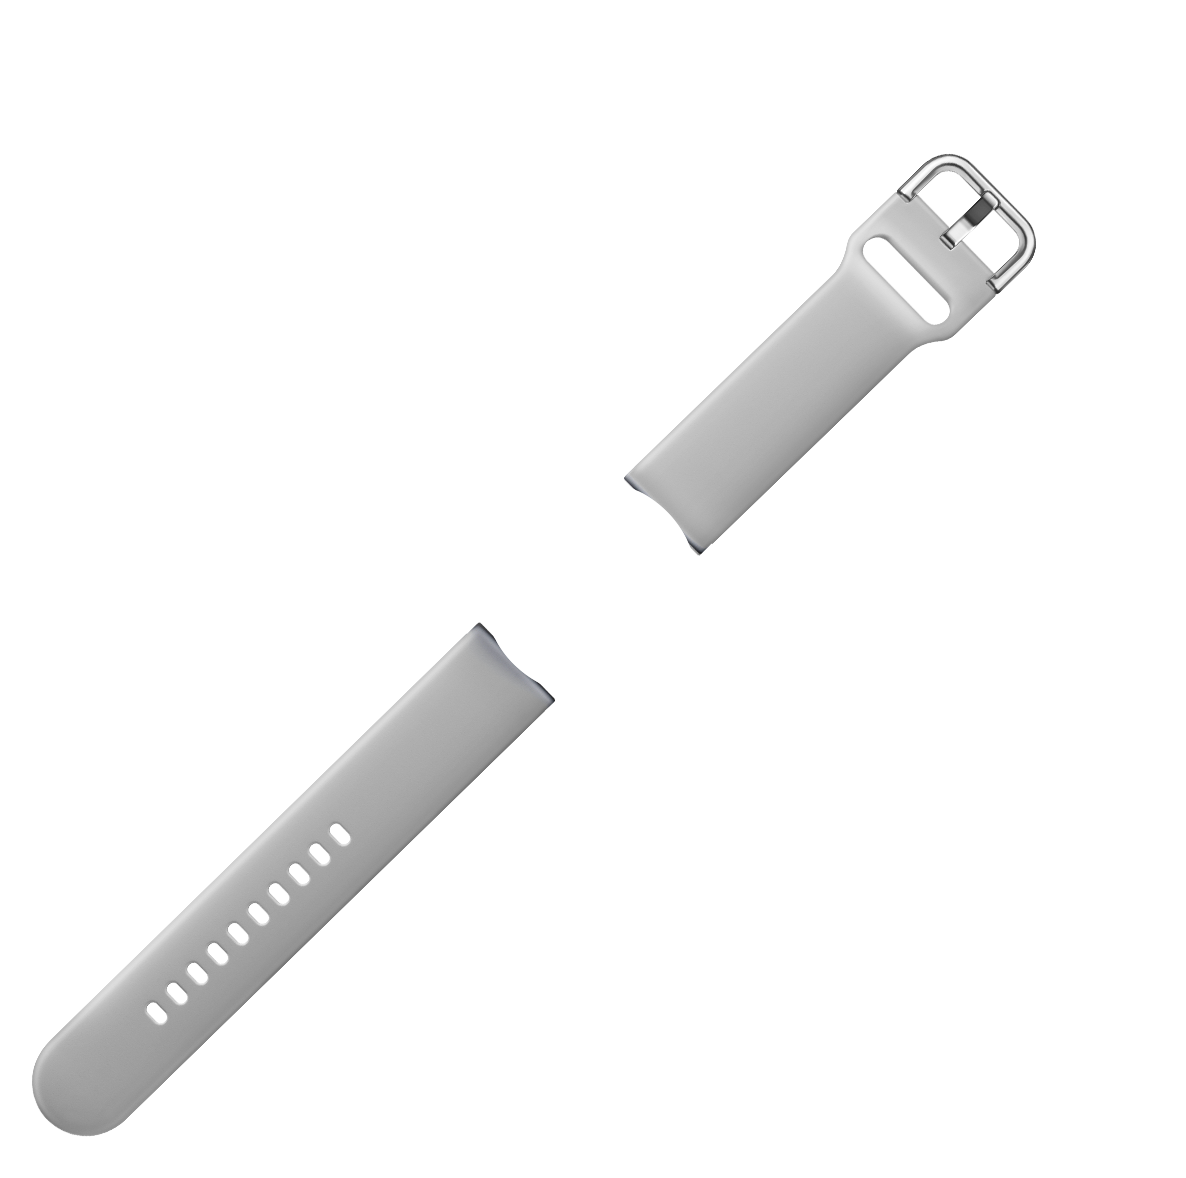 Strap is Light gray color